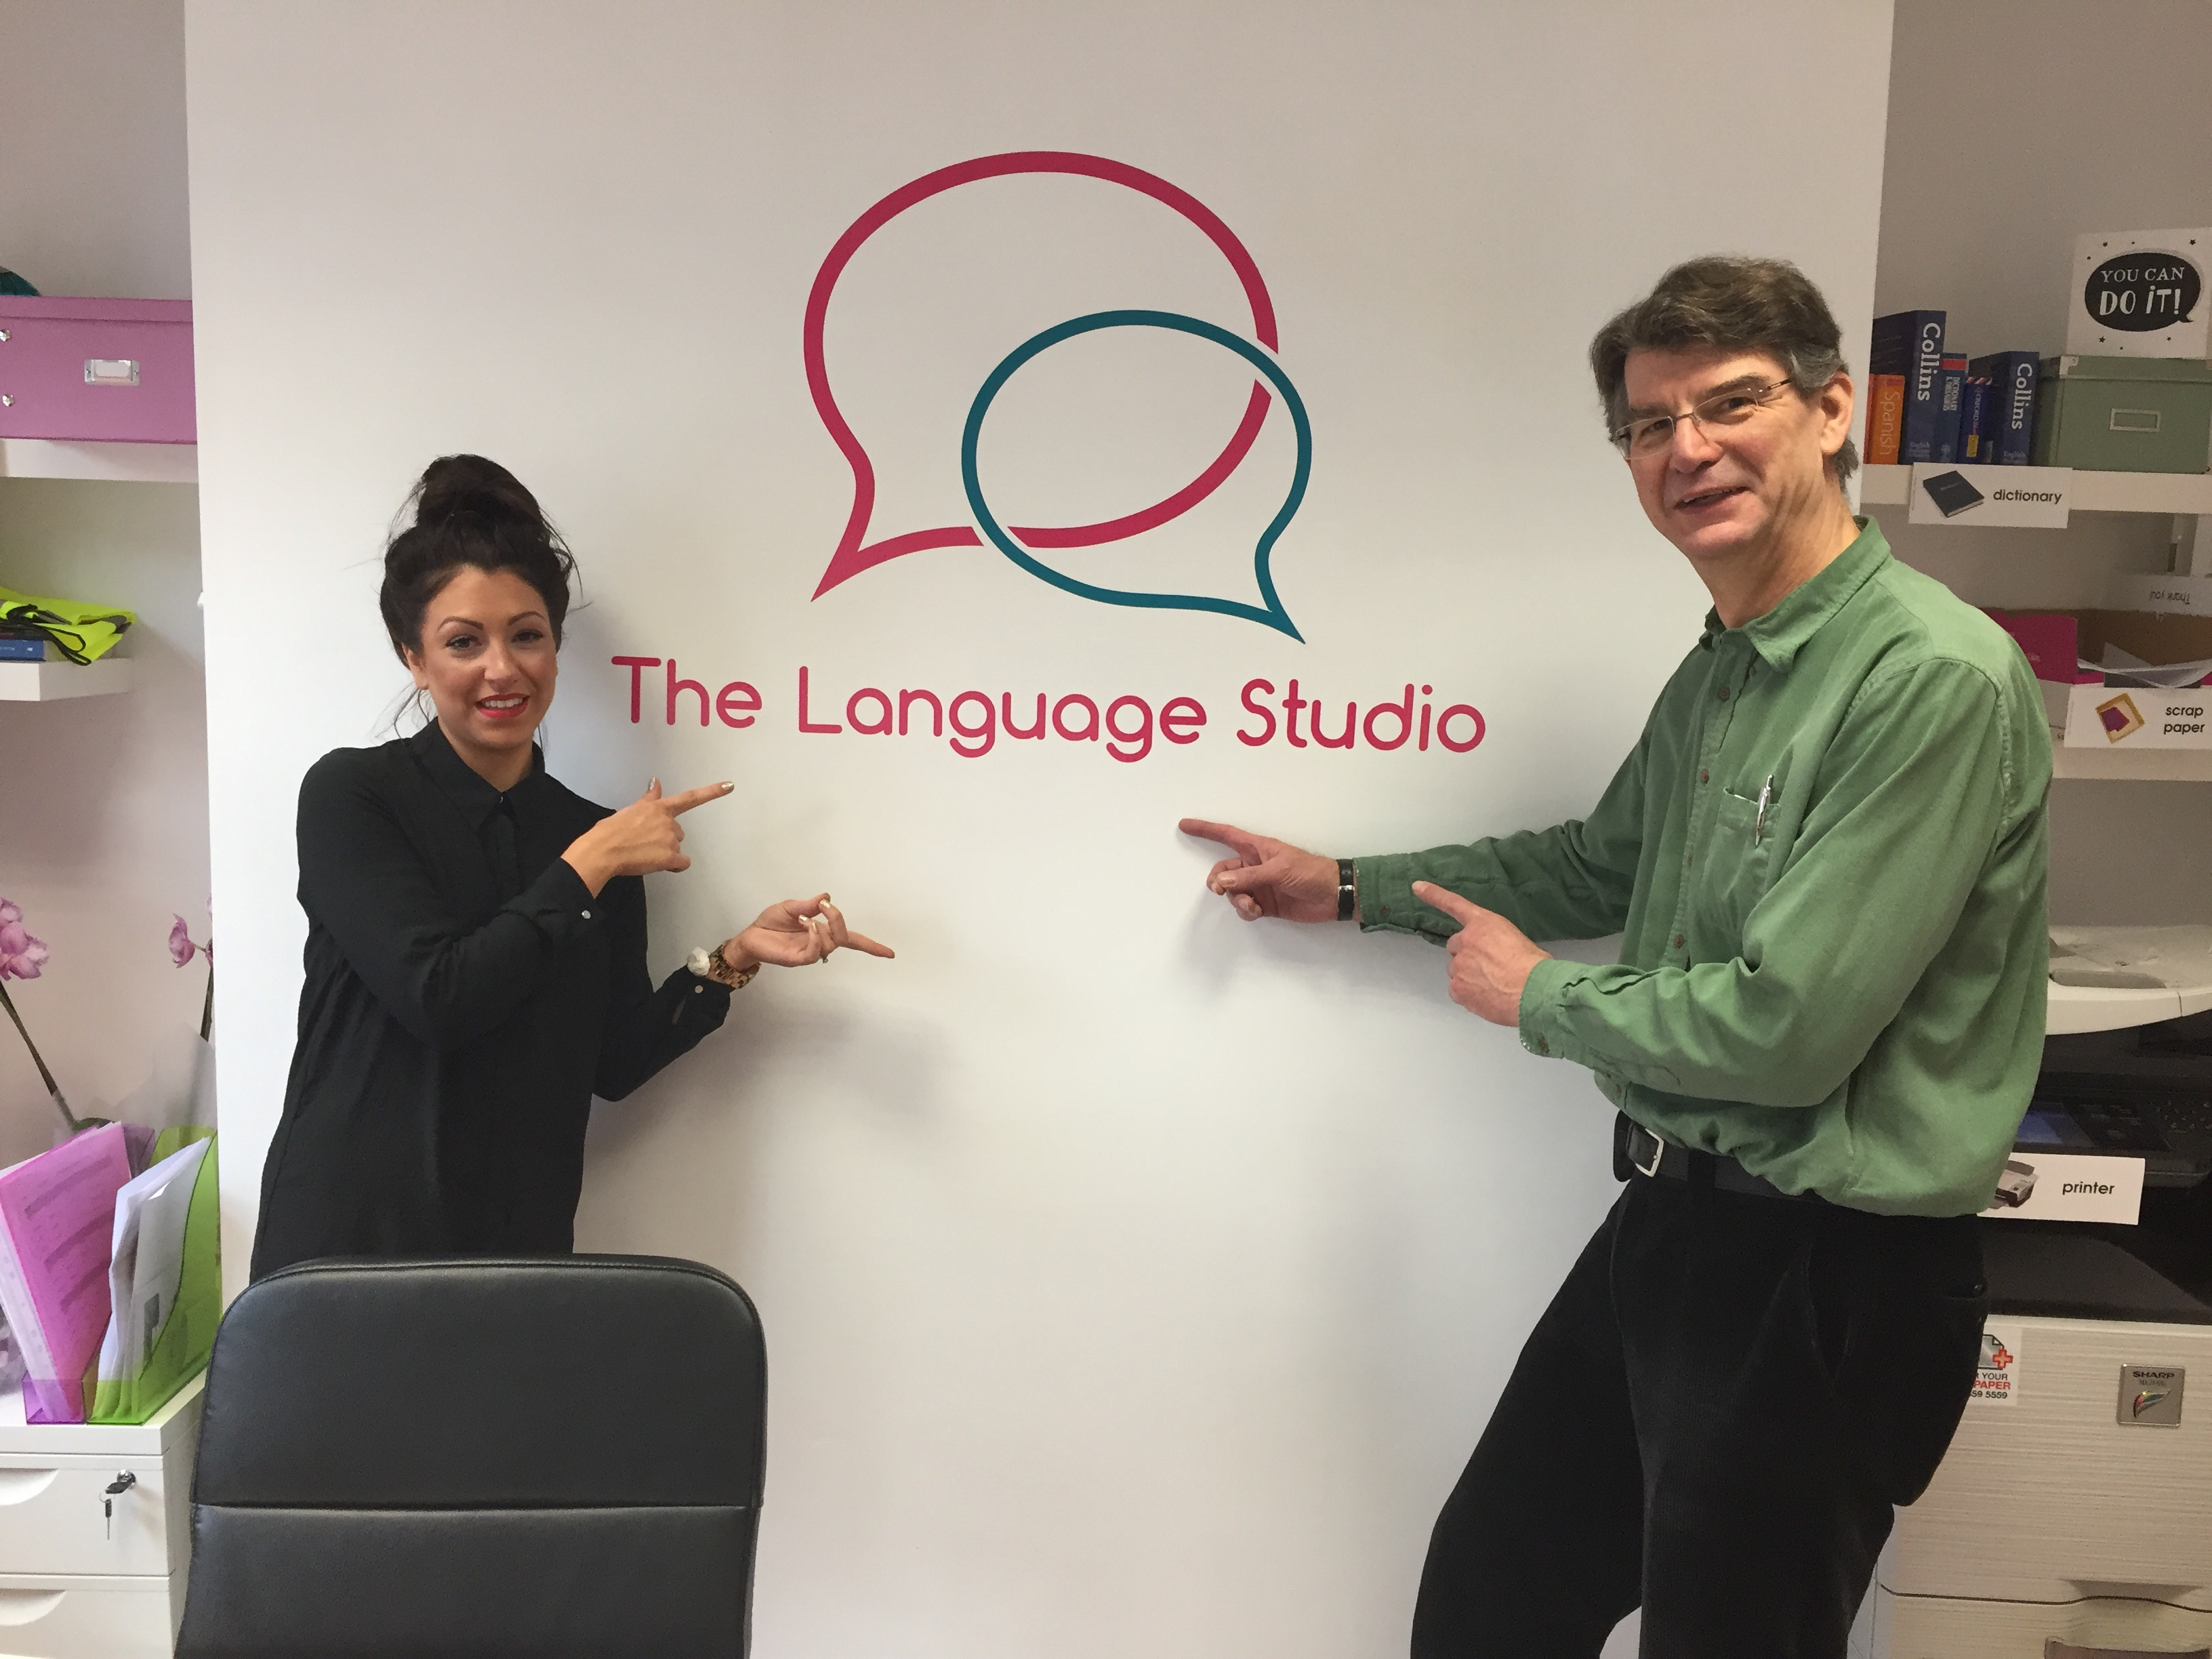 Rob Marris and Lorna Mitchell at the Language Studio